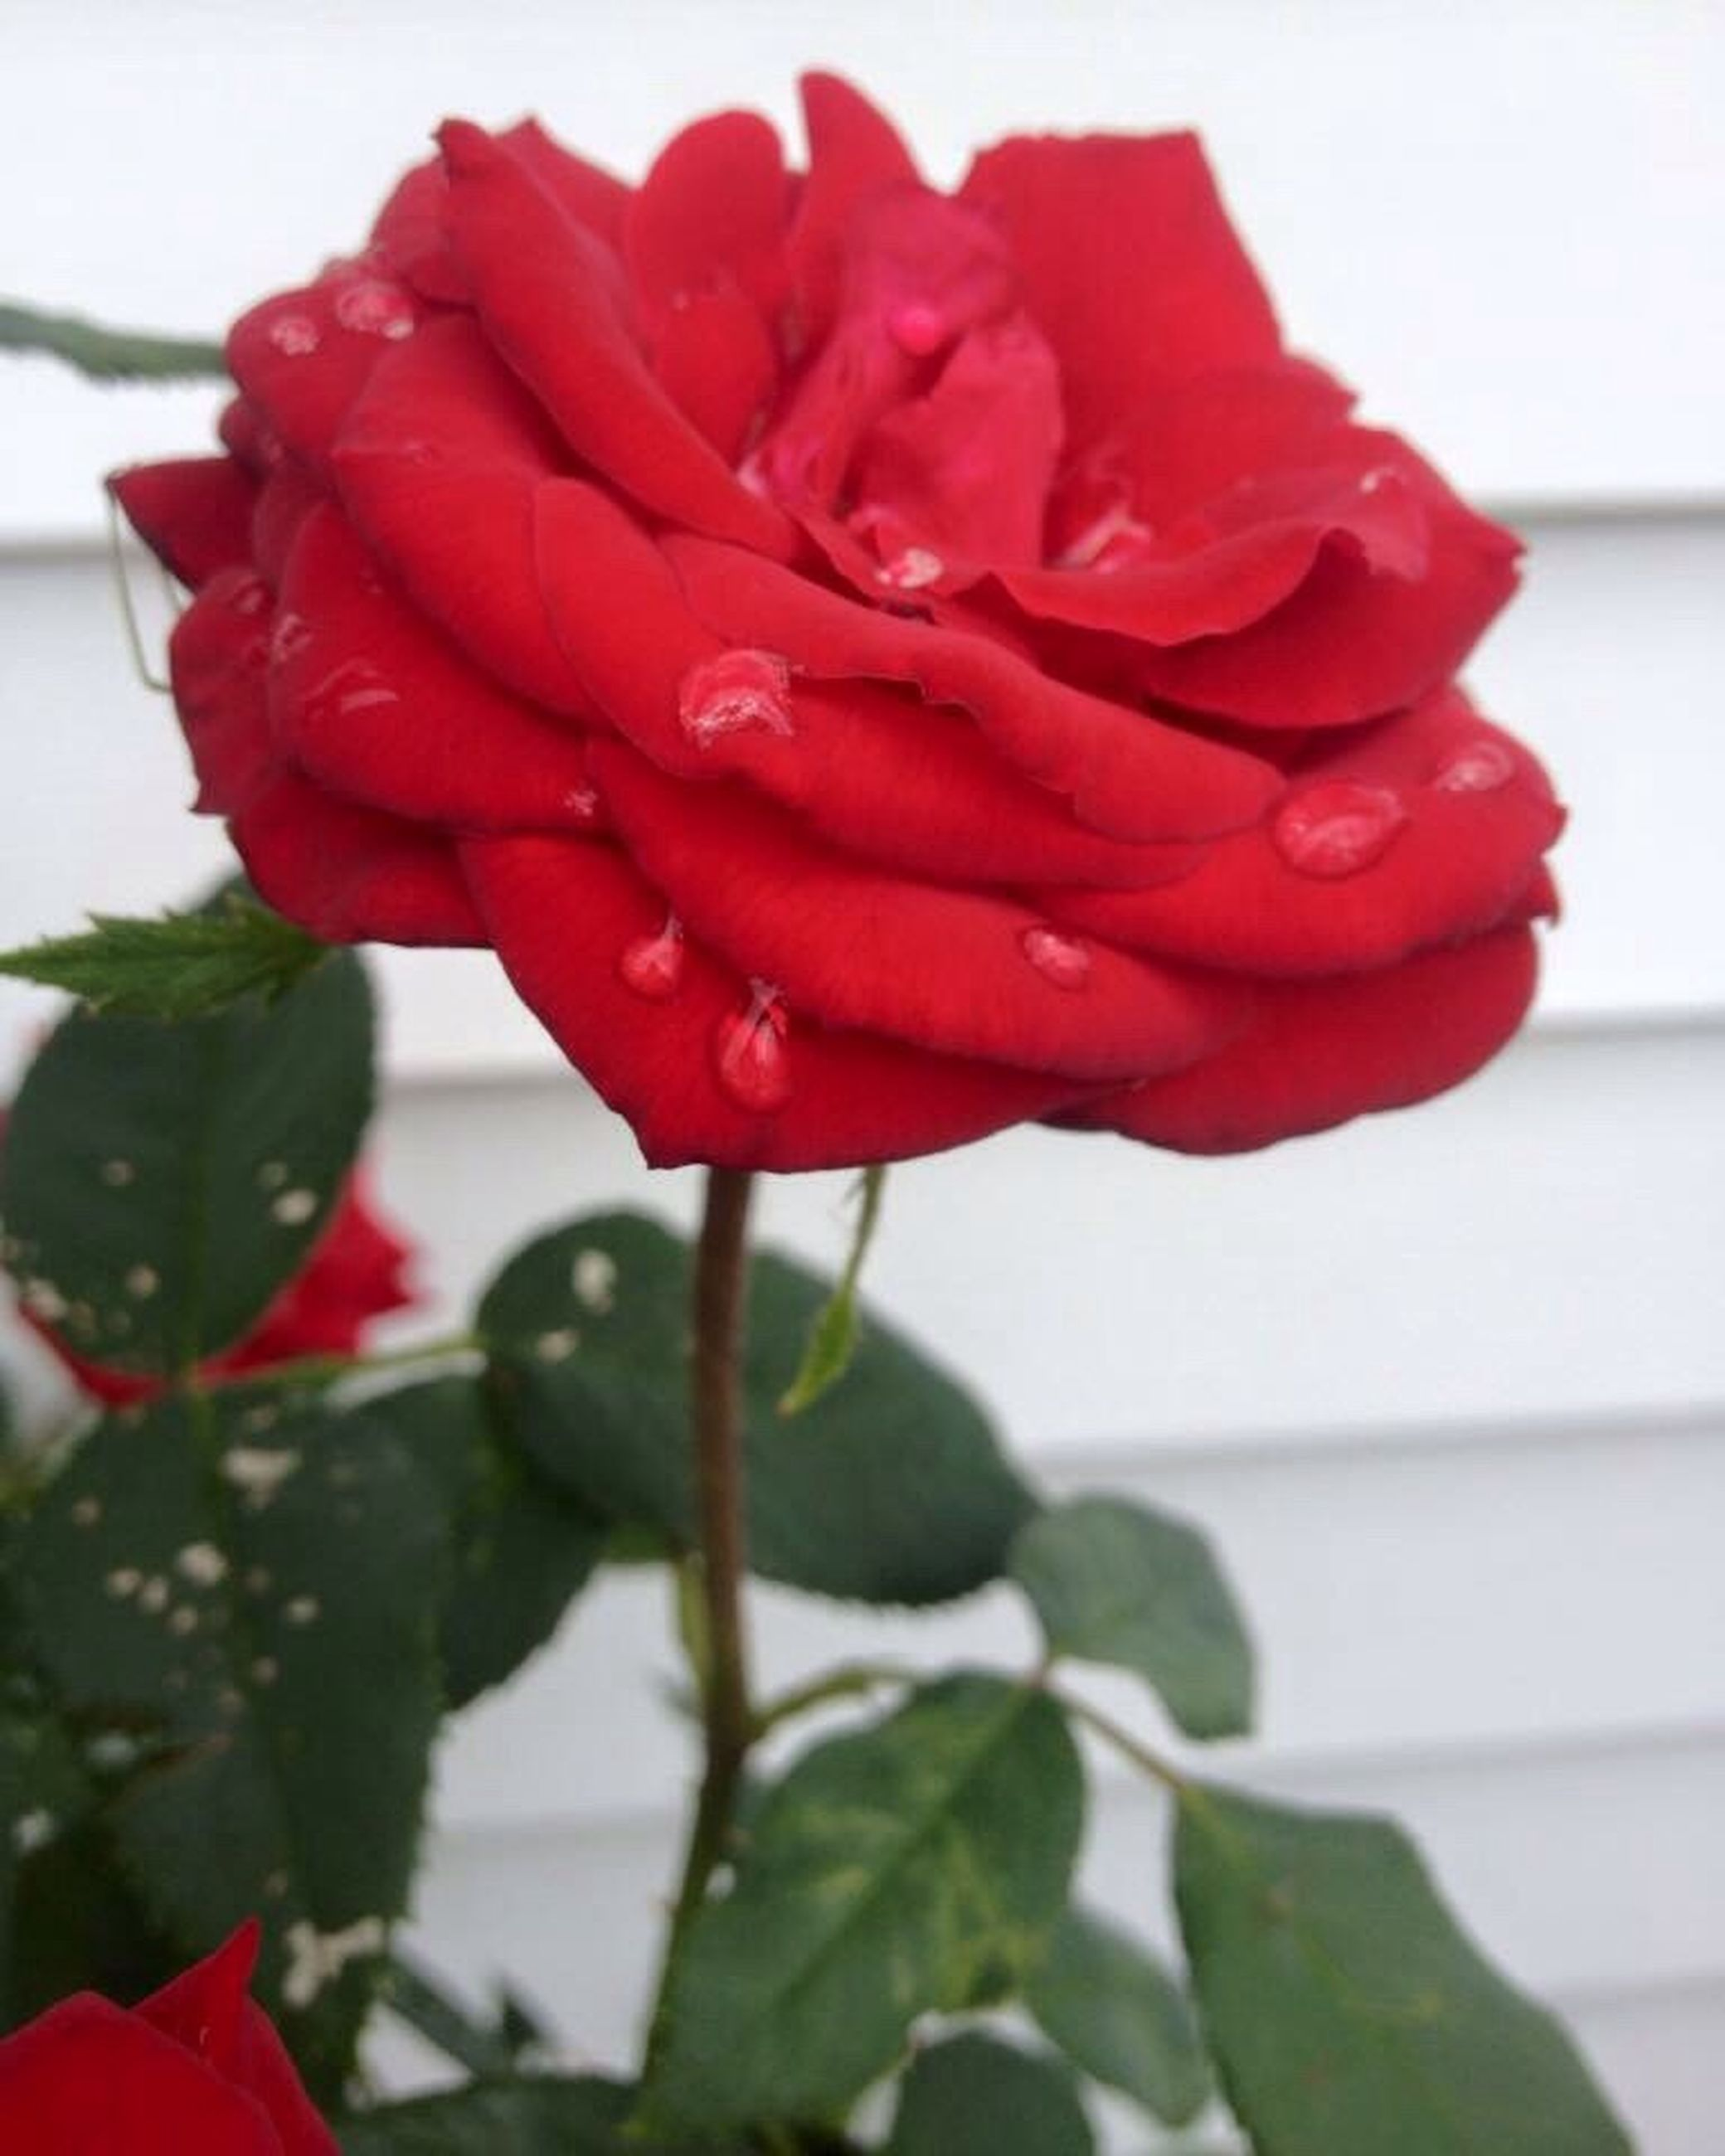 flower, petal, freshness, fragility, flower head, red, growth, close-up, rose - flower, beauty in nature, blooming, focus on foreground, plant, nature, in bloom, leaf, stem, blossom, botany, day, no people, outdoors, selective focus, softness, pollen